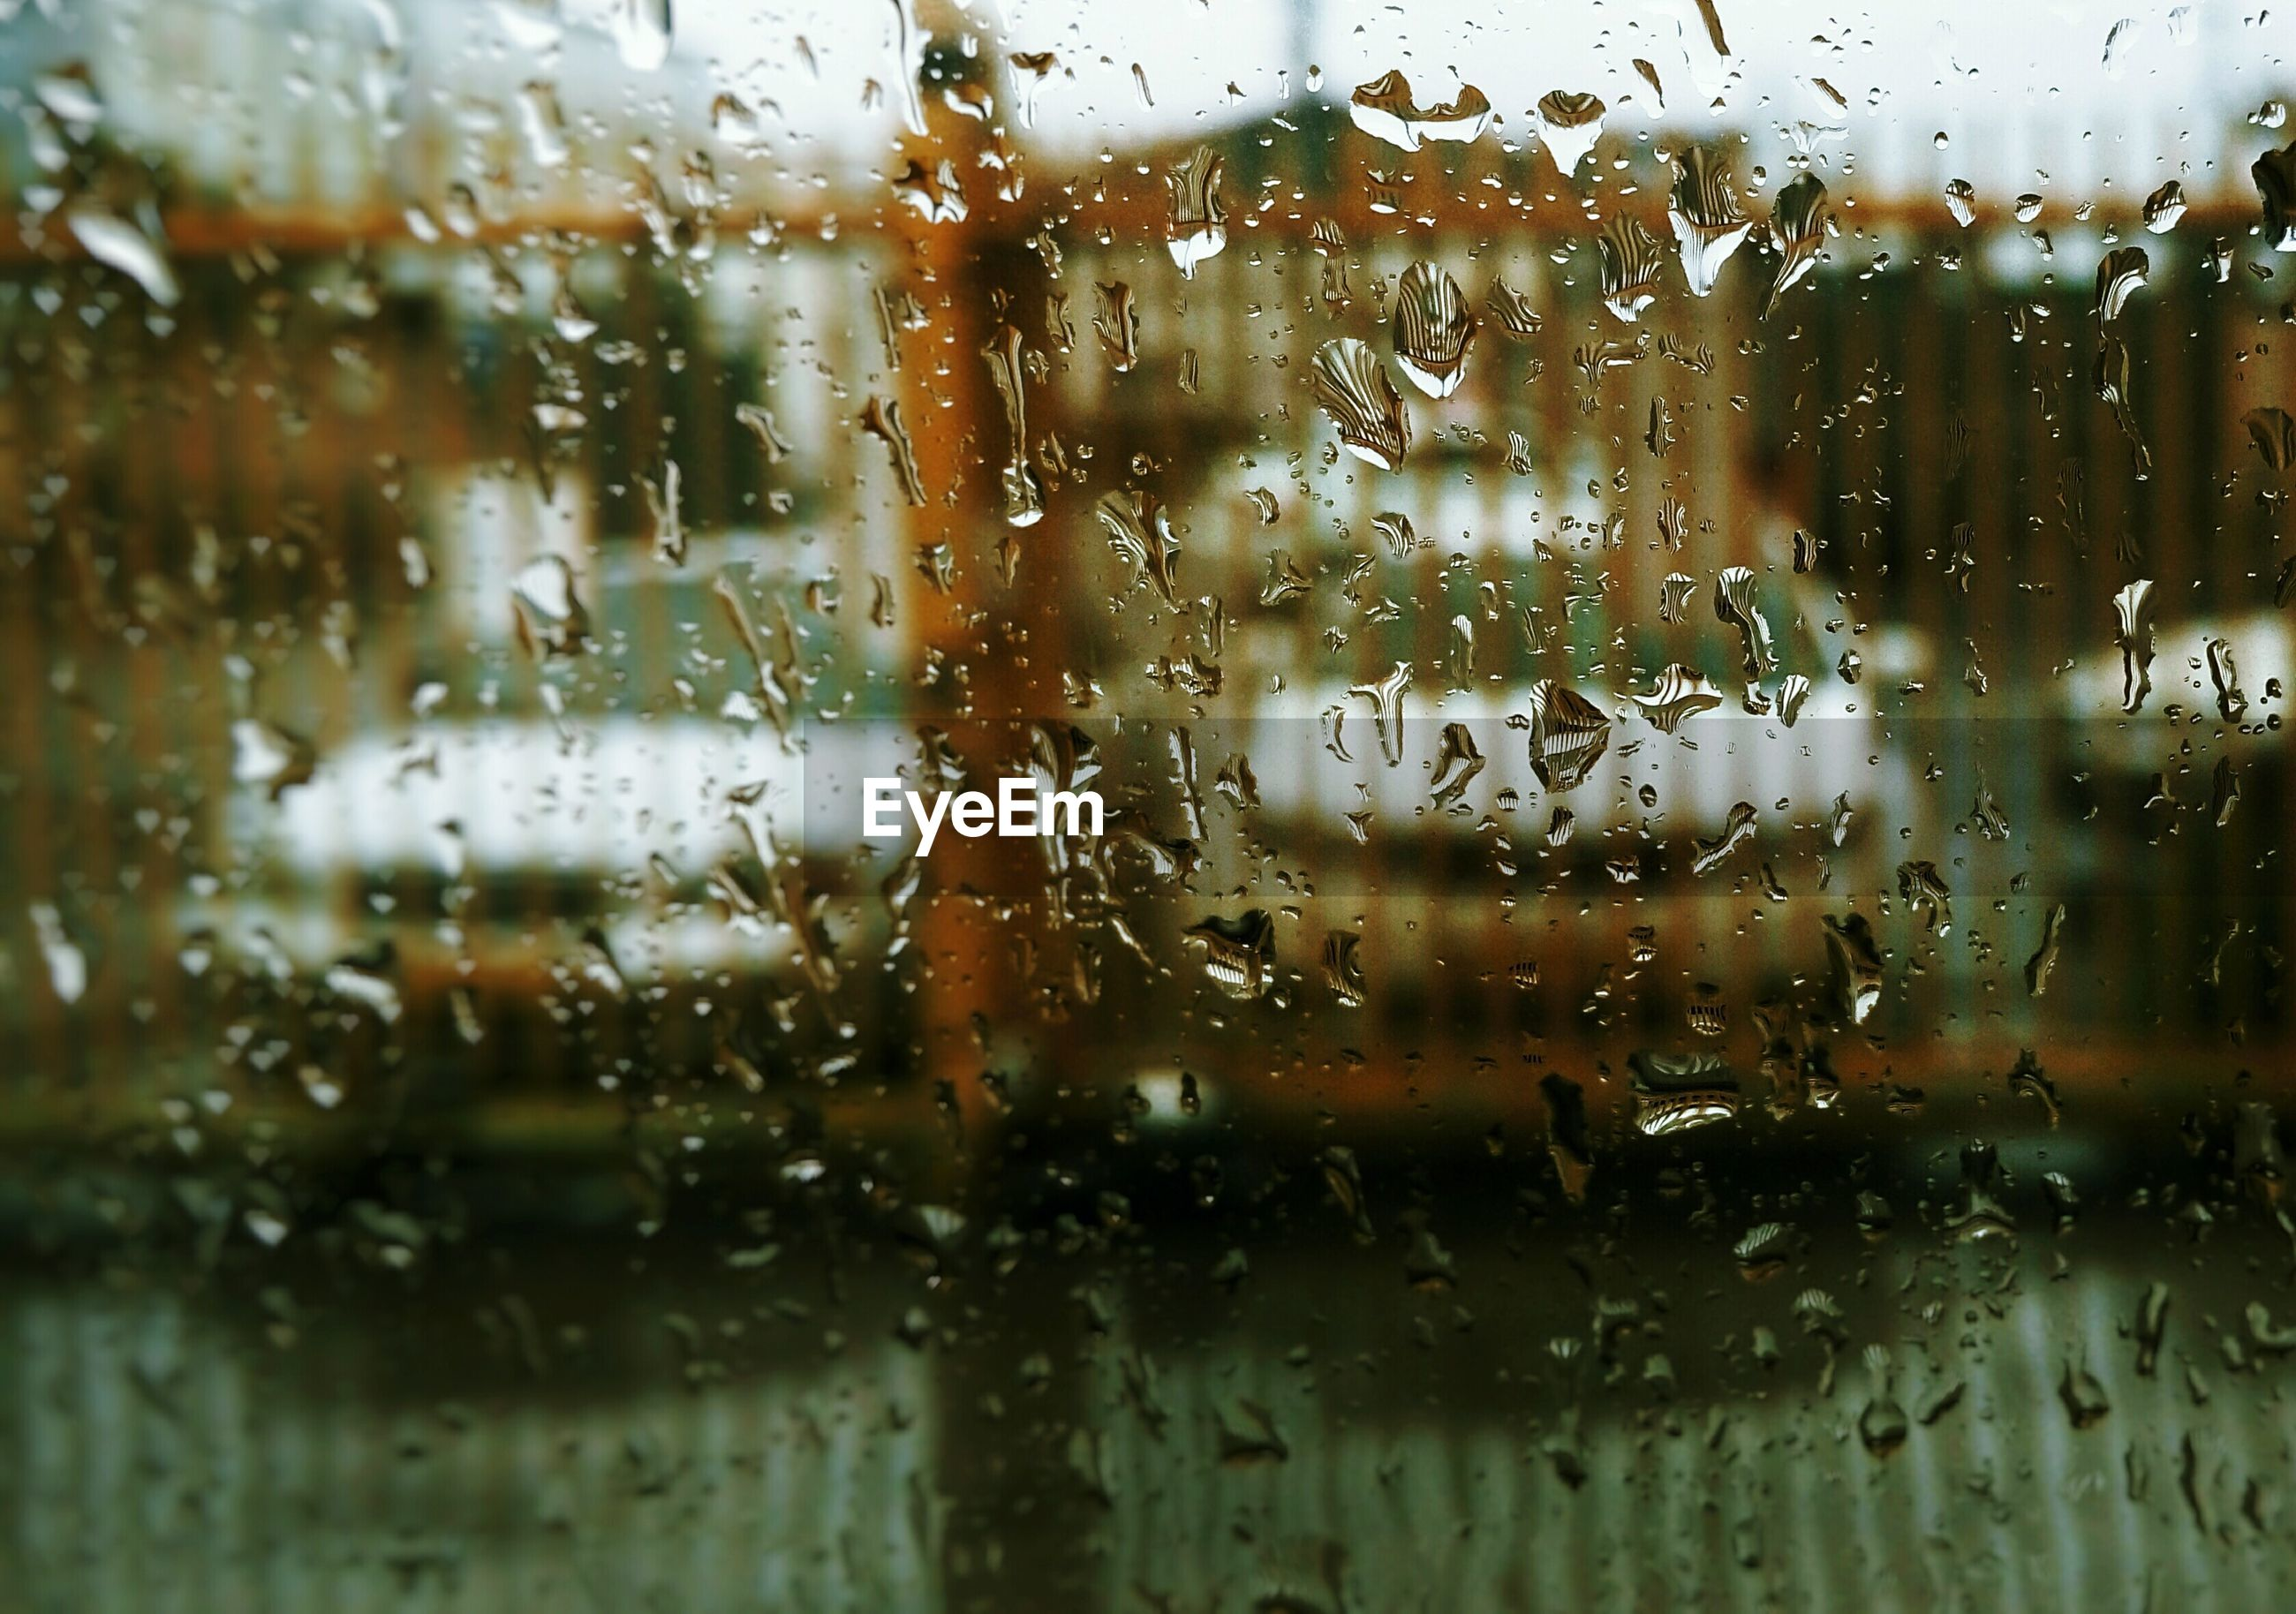 window, indoors, drop, wet, transparent, glass - material, rain, water, full frame, backgrounds, raindrop, weather, glass, season, focus on foreground, close-up, no people, condensation, monsoon, droplet